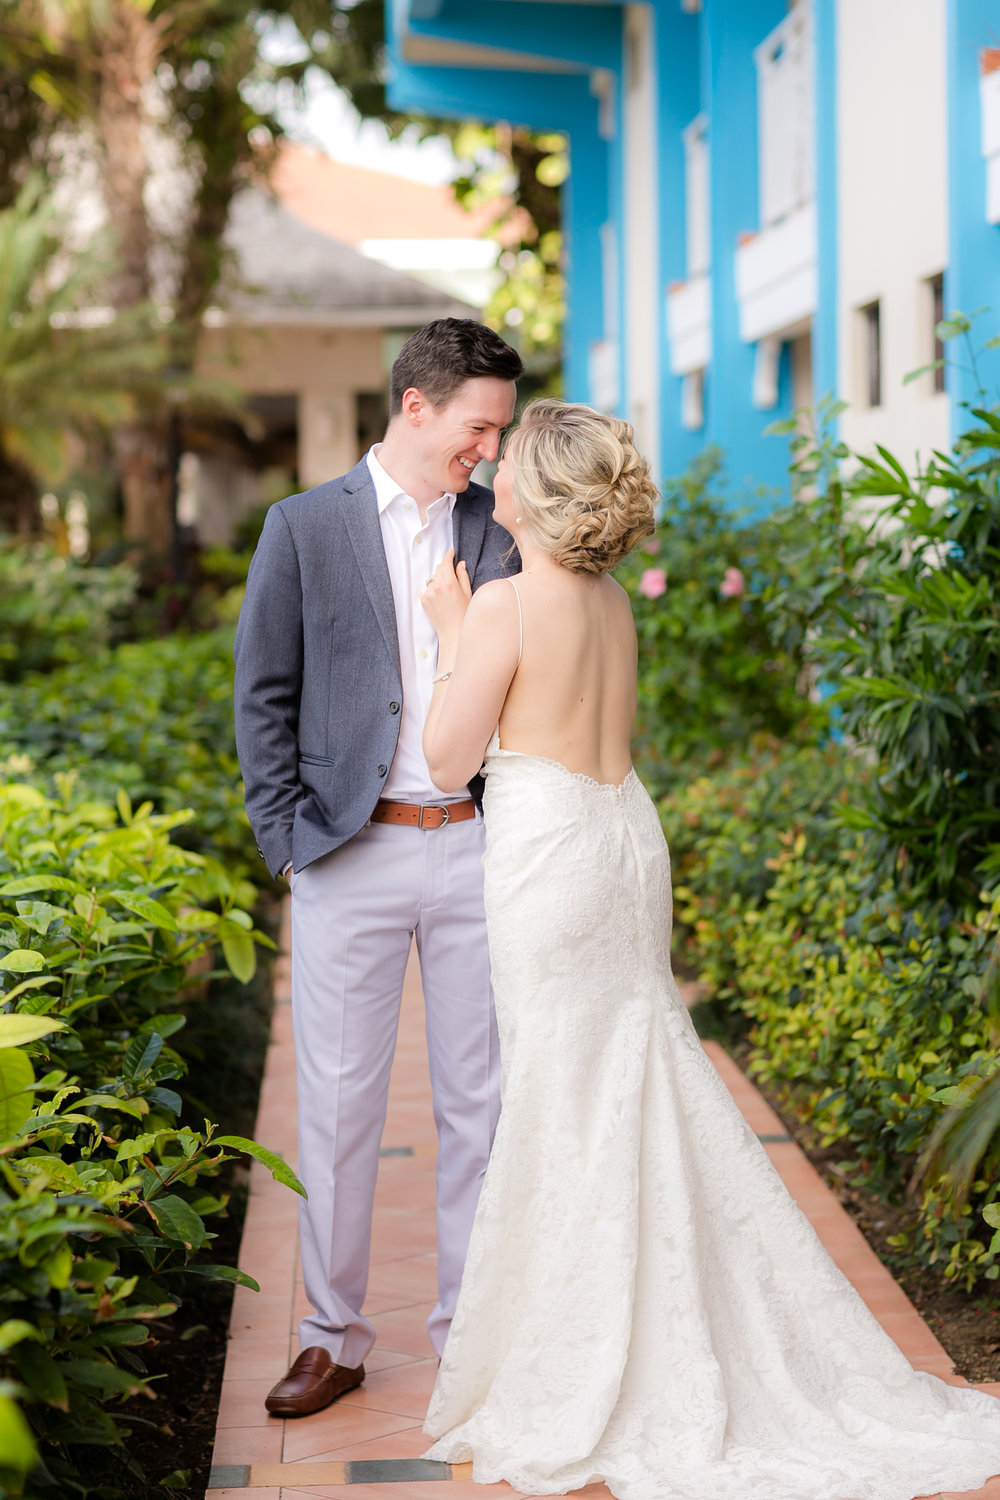 Destination Wedding Planner Q&A with Photographer